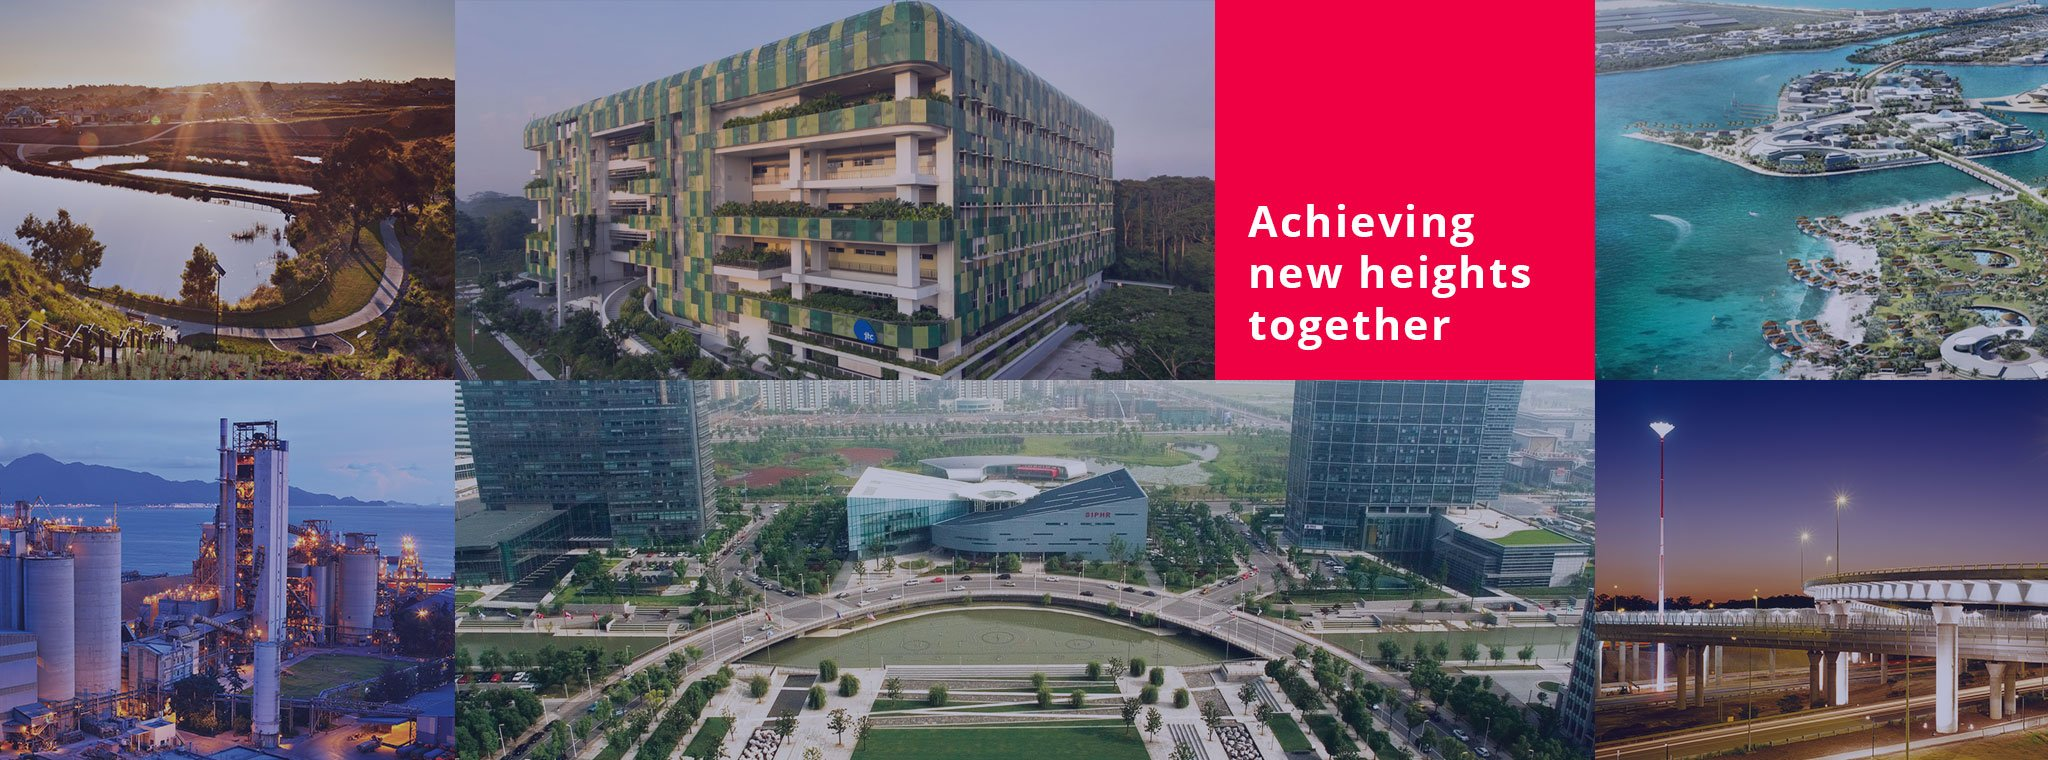 Surbana Jurong & SMEC - <br>Achieving new heights together